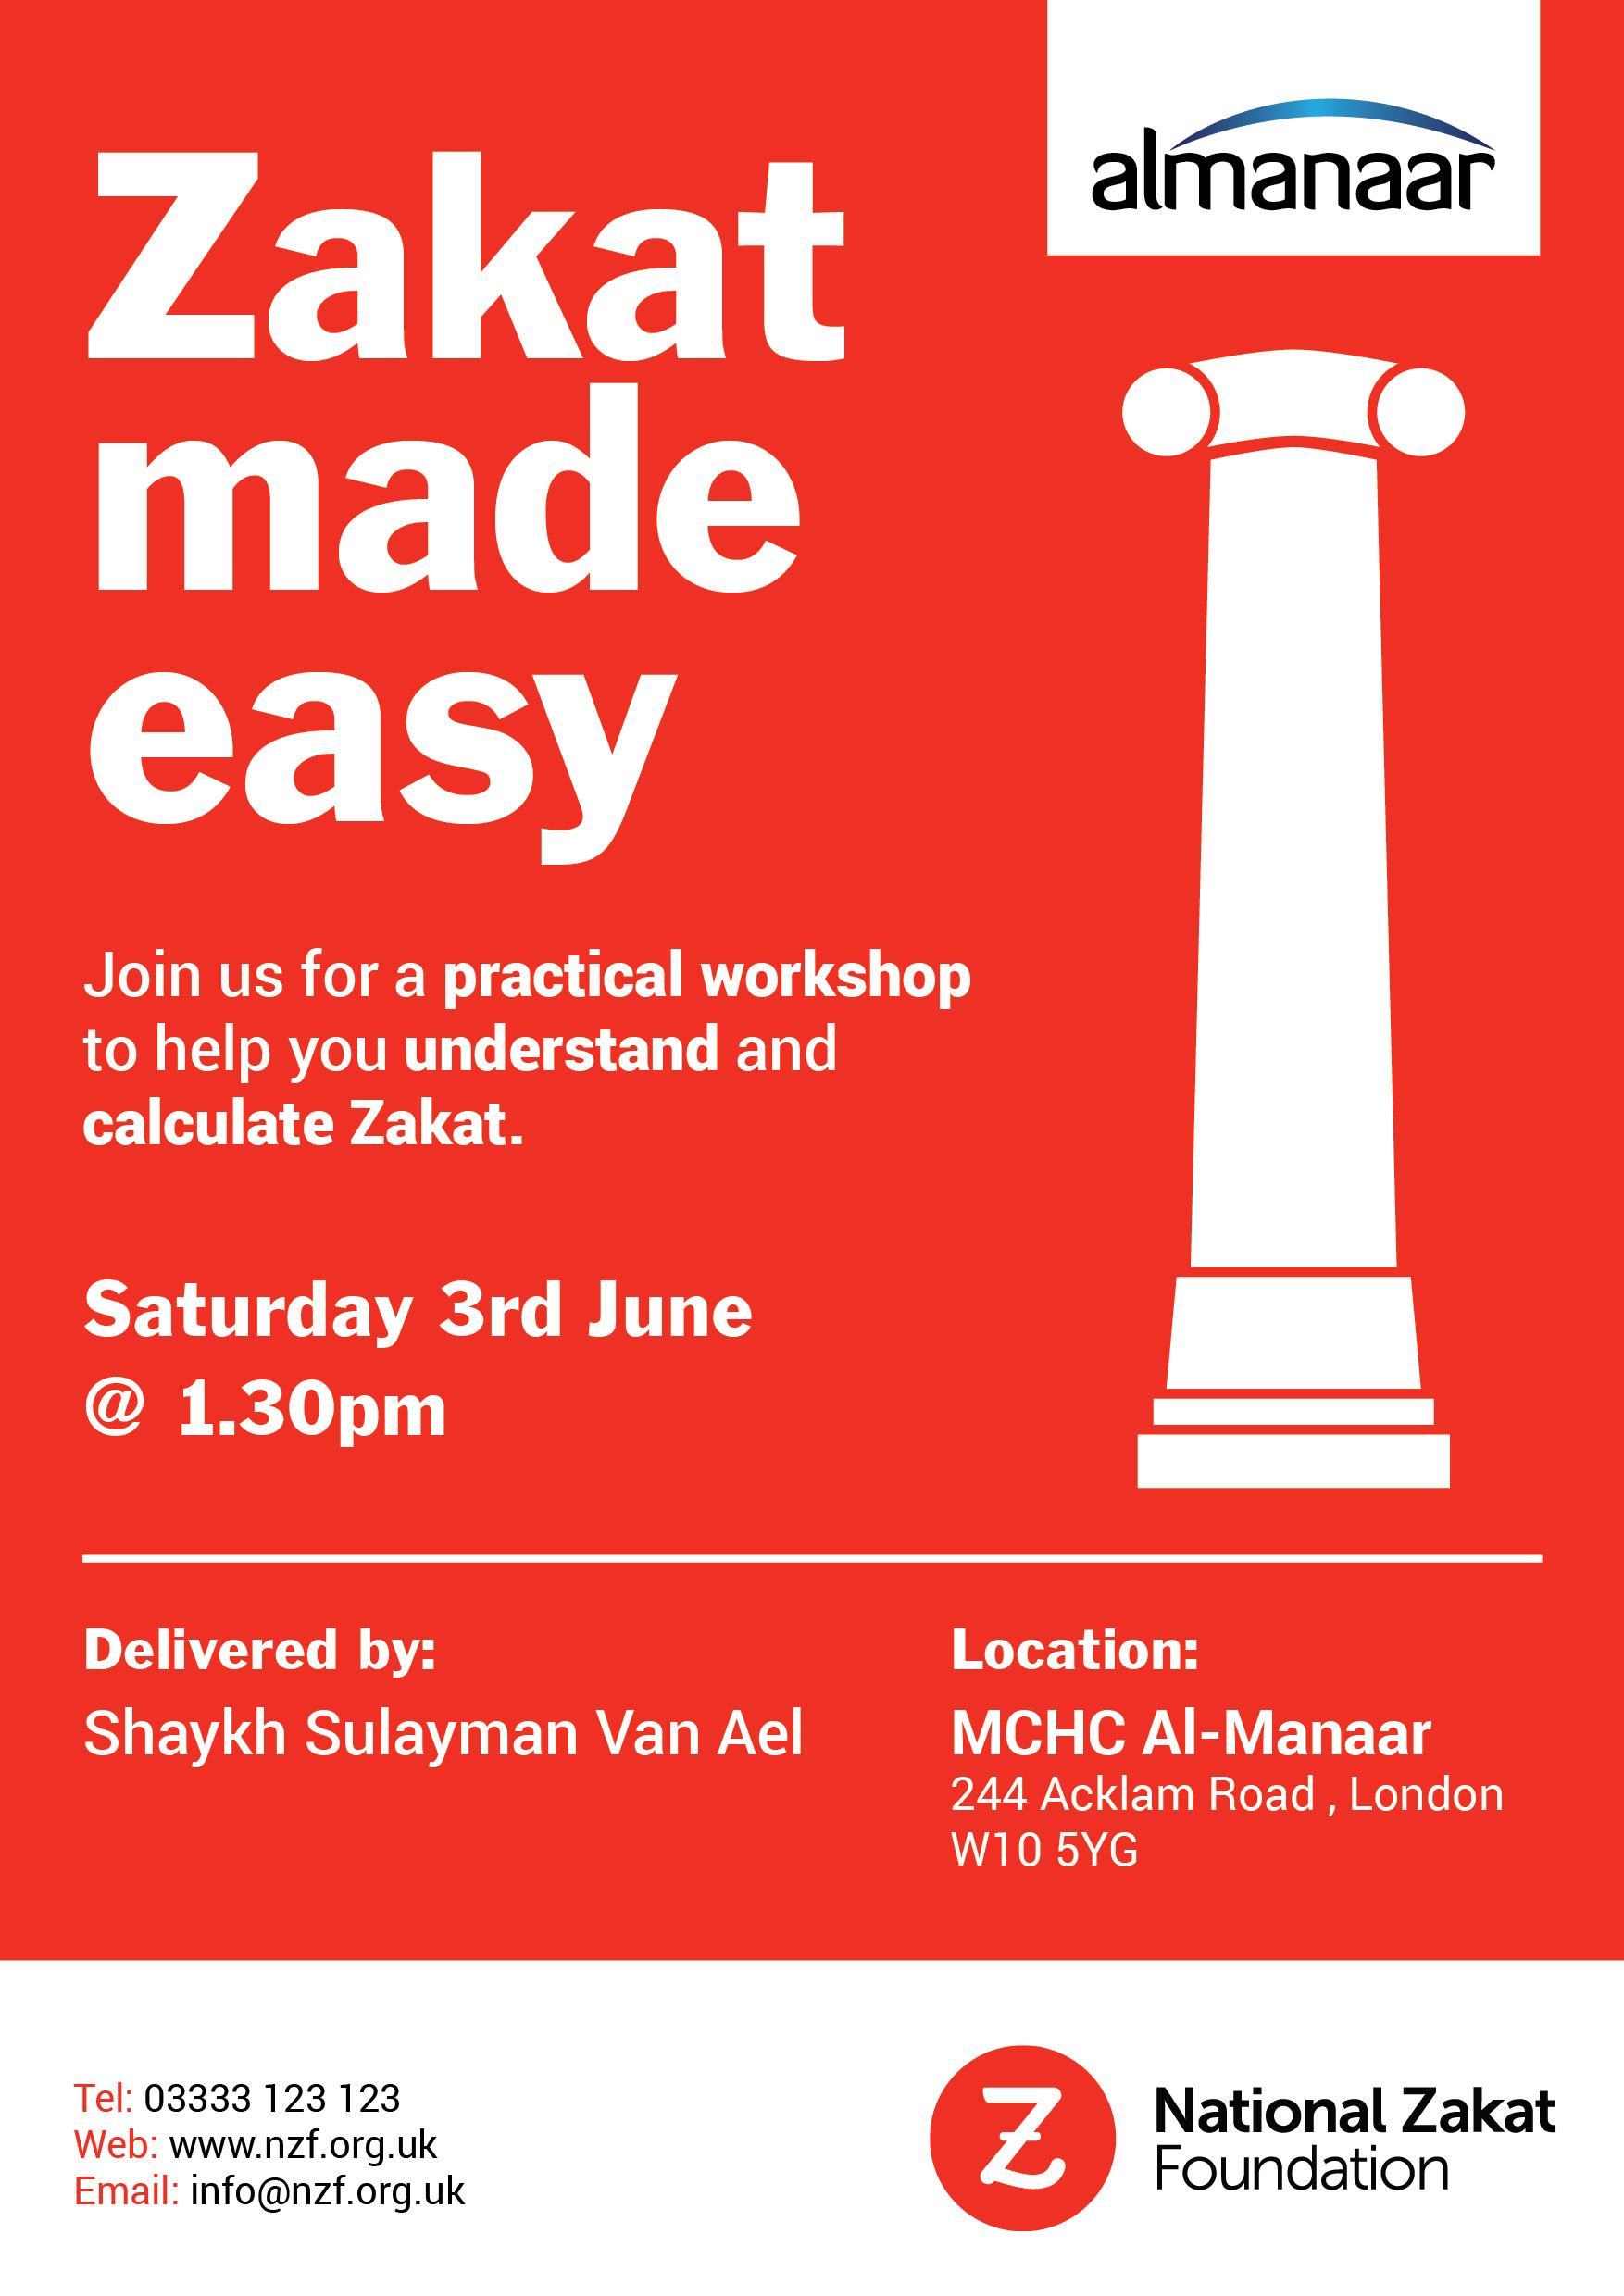 NZF Zakat Workshop for MCHC Al-Manar Sat 3rd June 2017